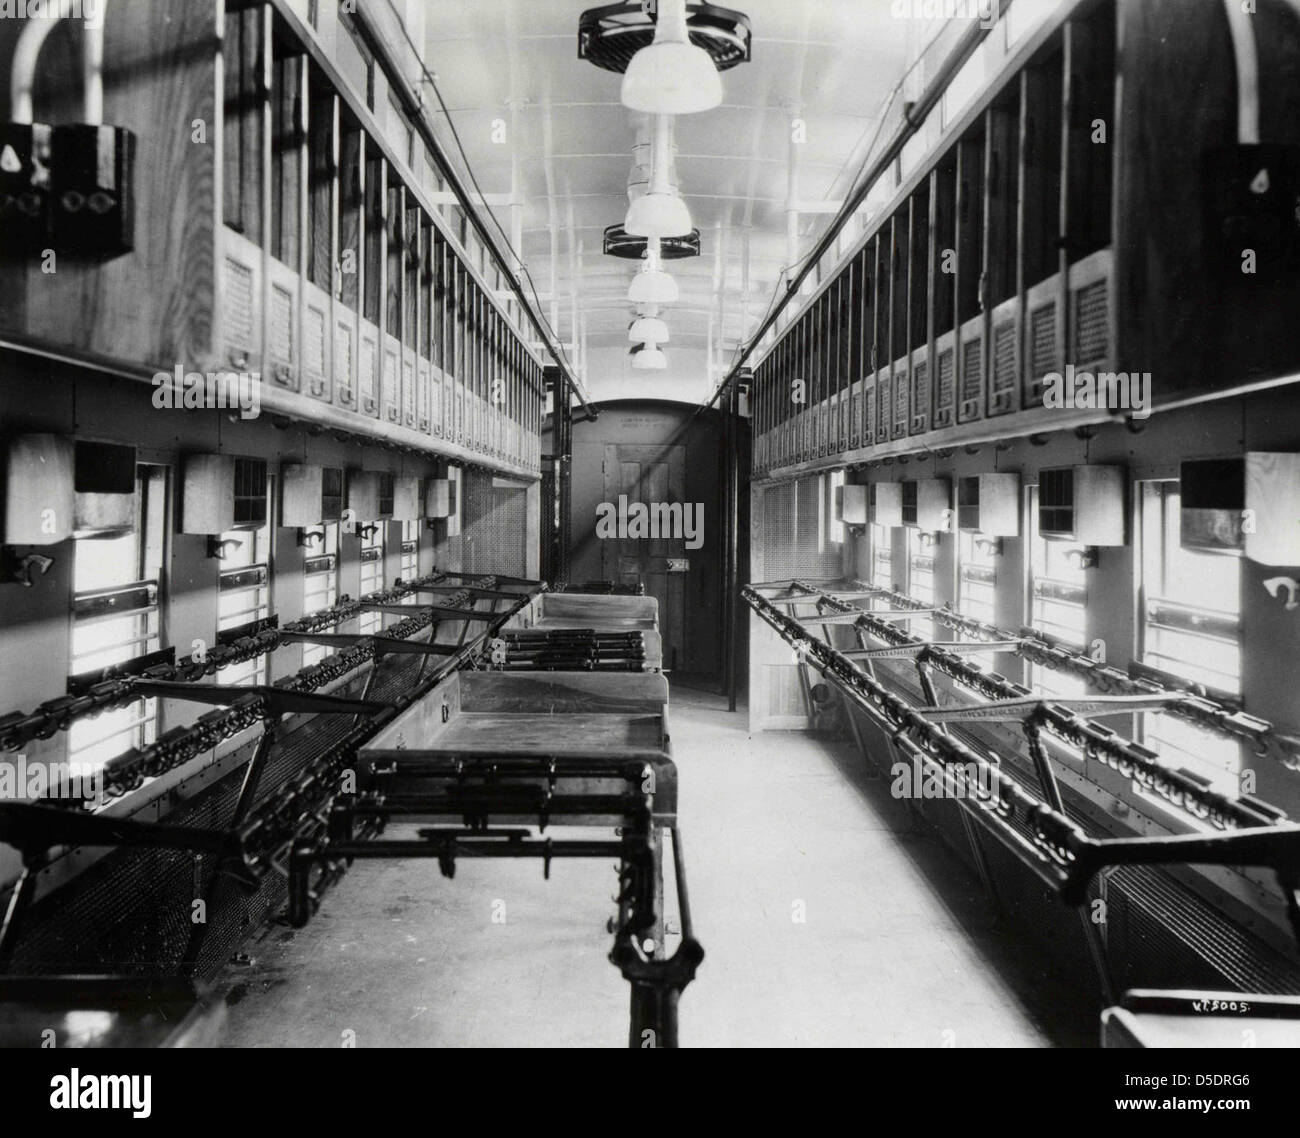 Interior of a Railway Post Office Car - Stock Image